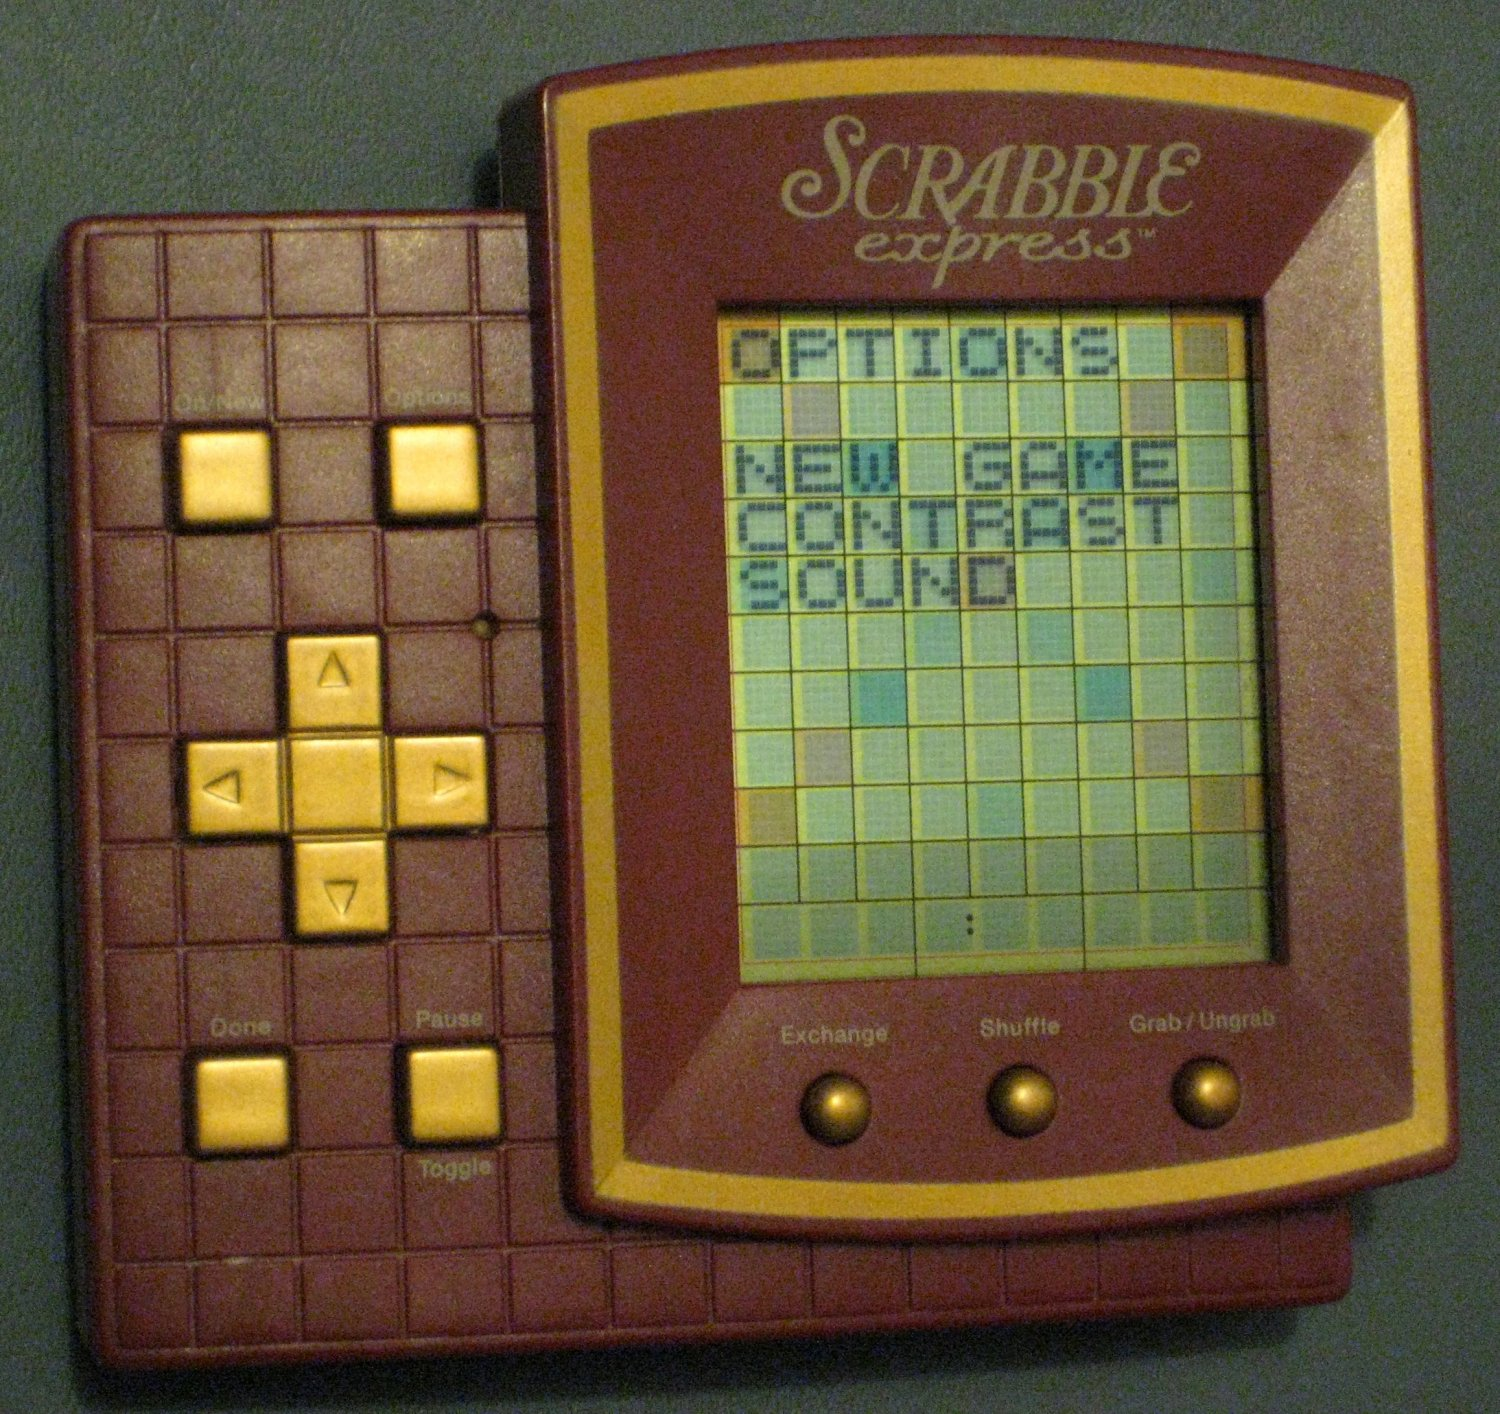 SOLD Scrabble Express Handheld Travel Game Electronic Hasbro 1999 Excellent Condition